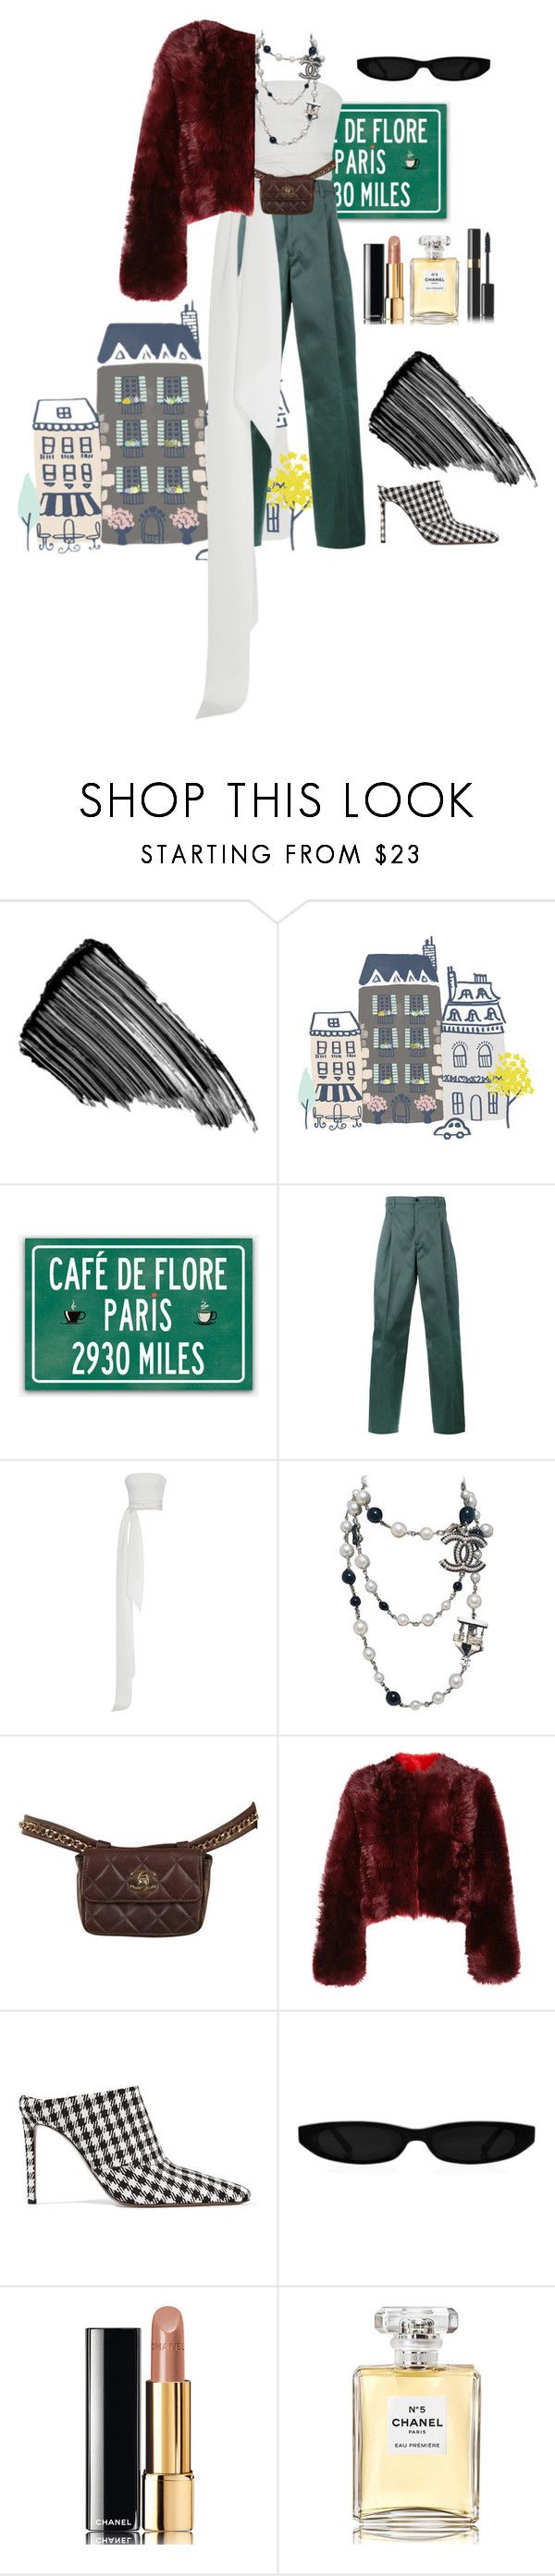 """""""Going some Chanel store in Paris."""" by bxlenciaga ❤ liked on Polyvore featuring Sisley, Raf Simons, Chanel, Calvin Klein 205W39NYC and Altuzarra"""